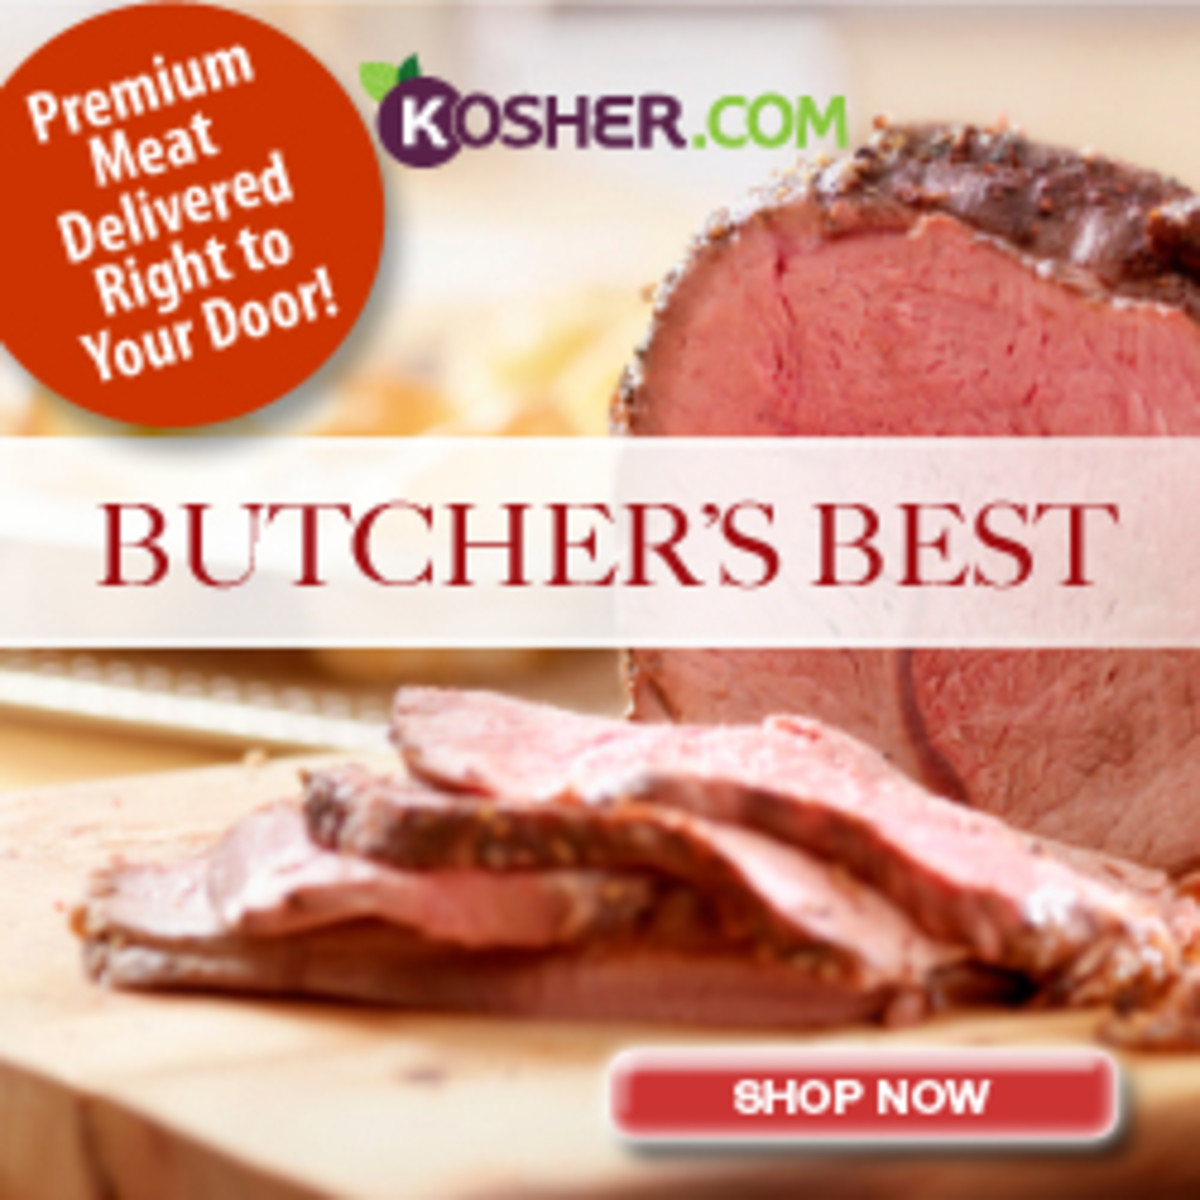 Kosher-com_Meat